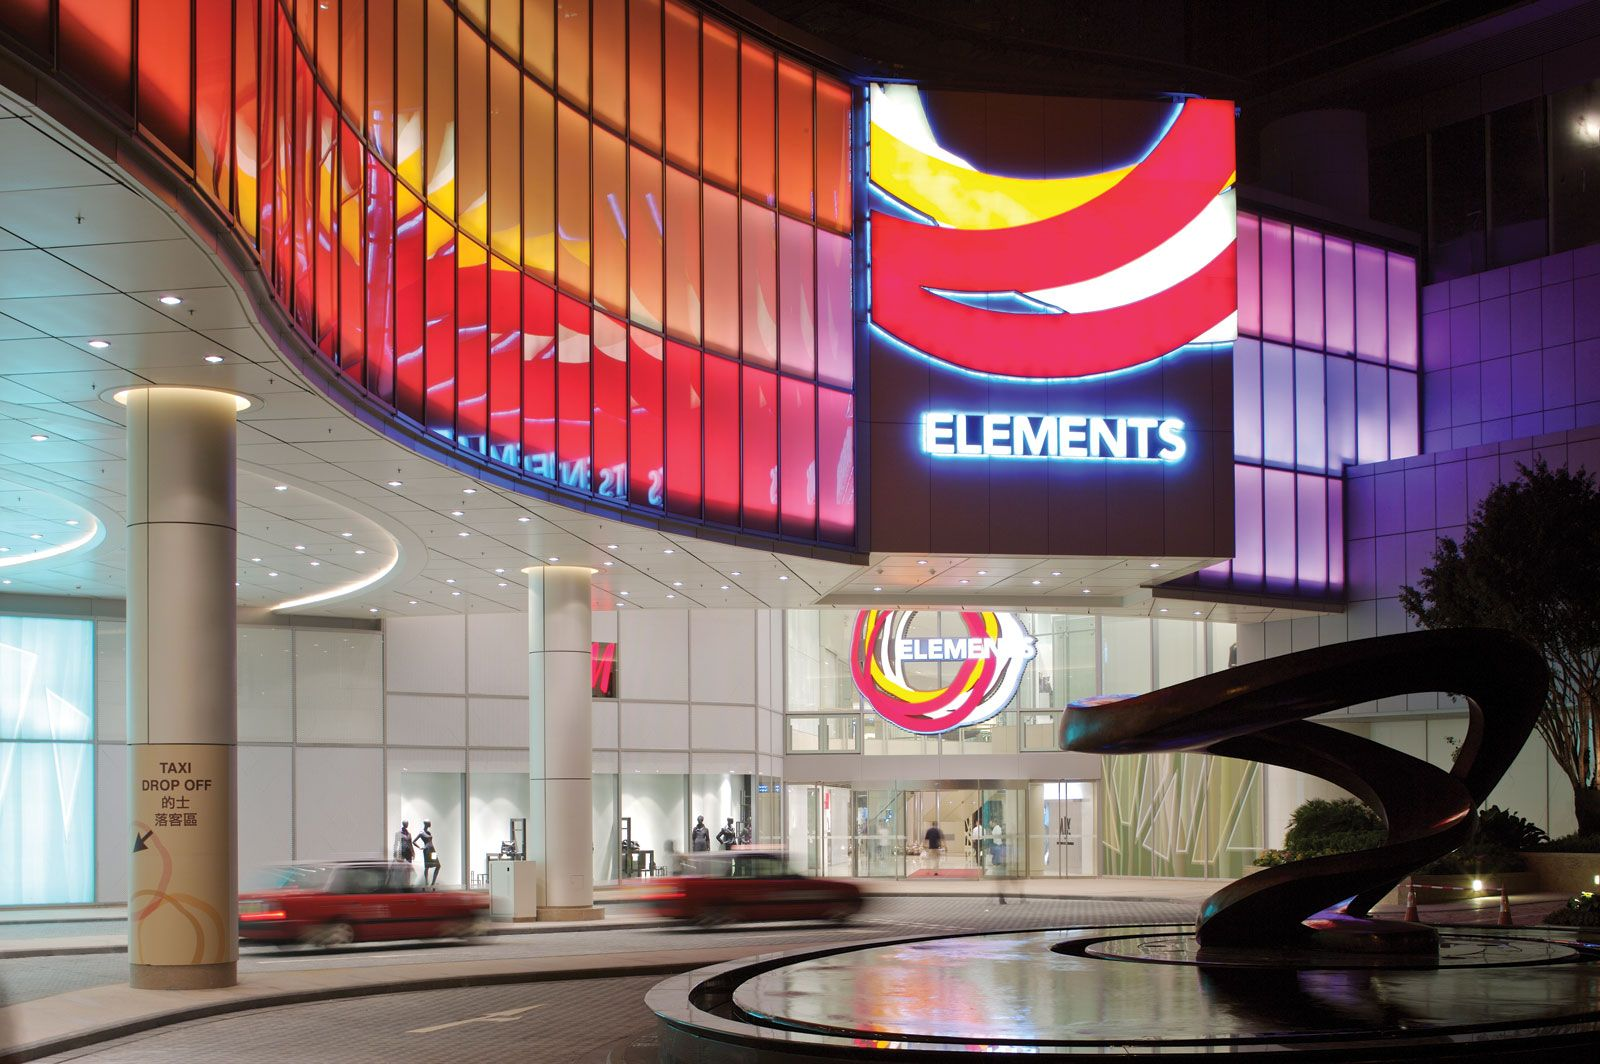 Elements Mall Hong Kong This Exciting Retail Development Sits Above The Kowloon MTR Station Linking